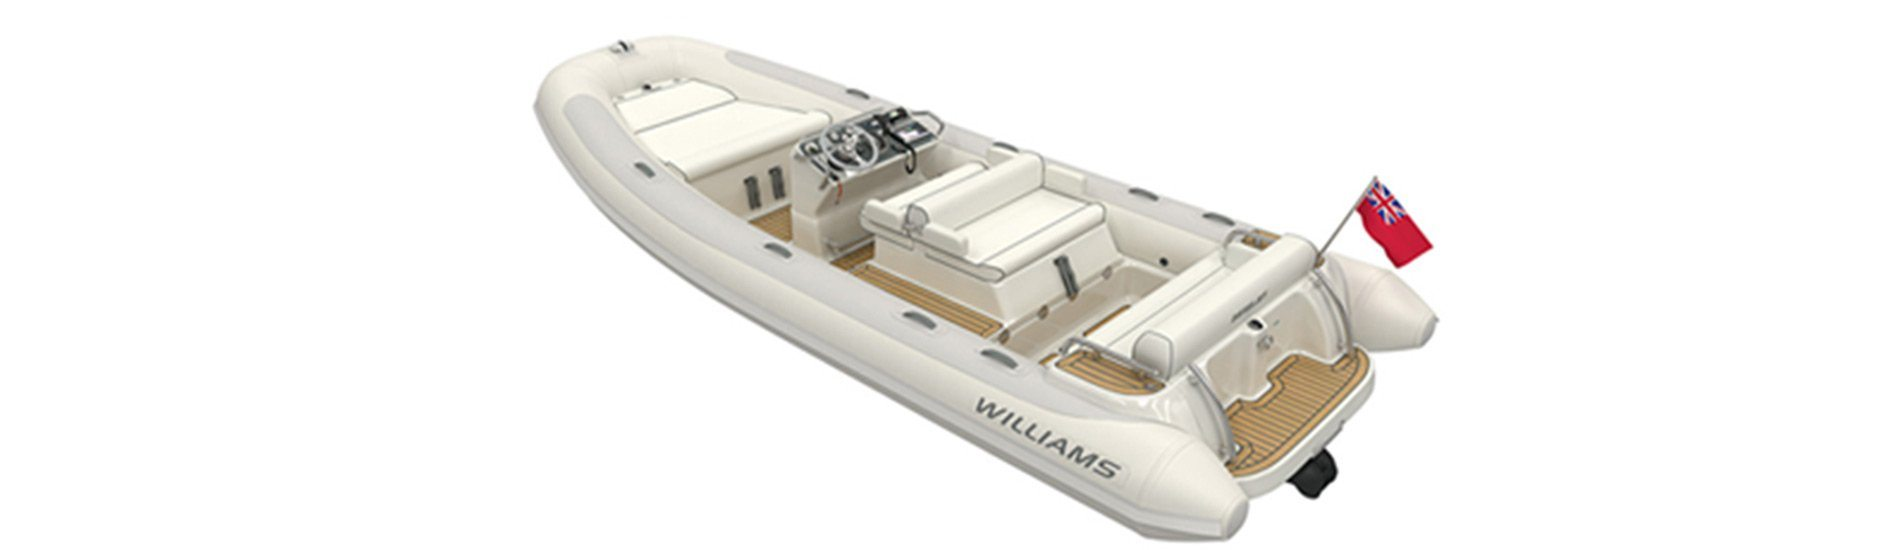 Buy yacht WILLIAMS Tenders Dieseljet 565